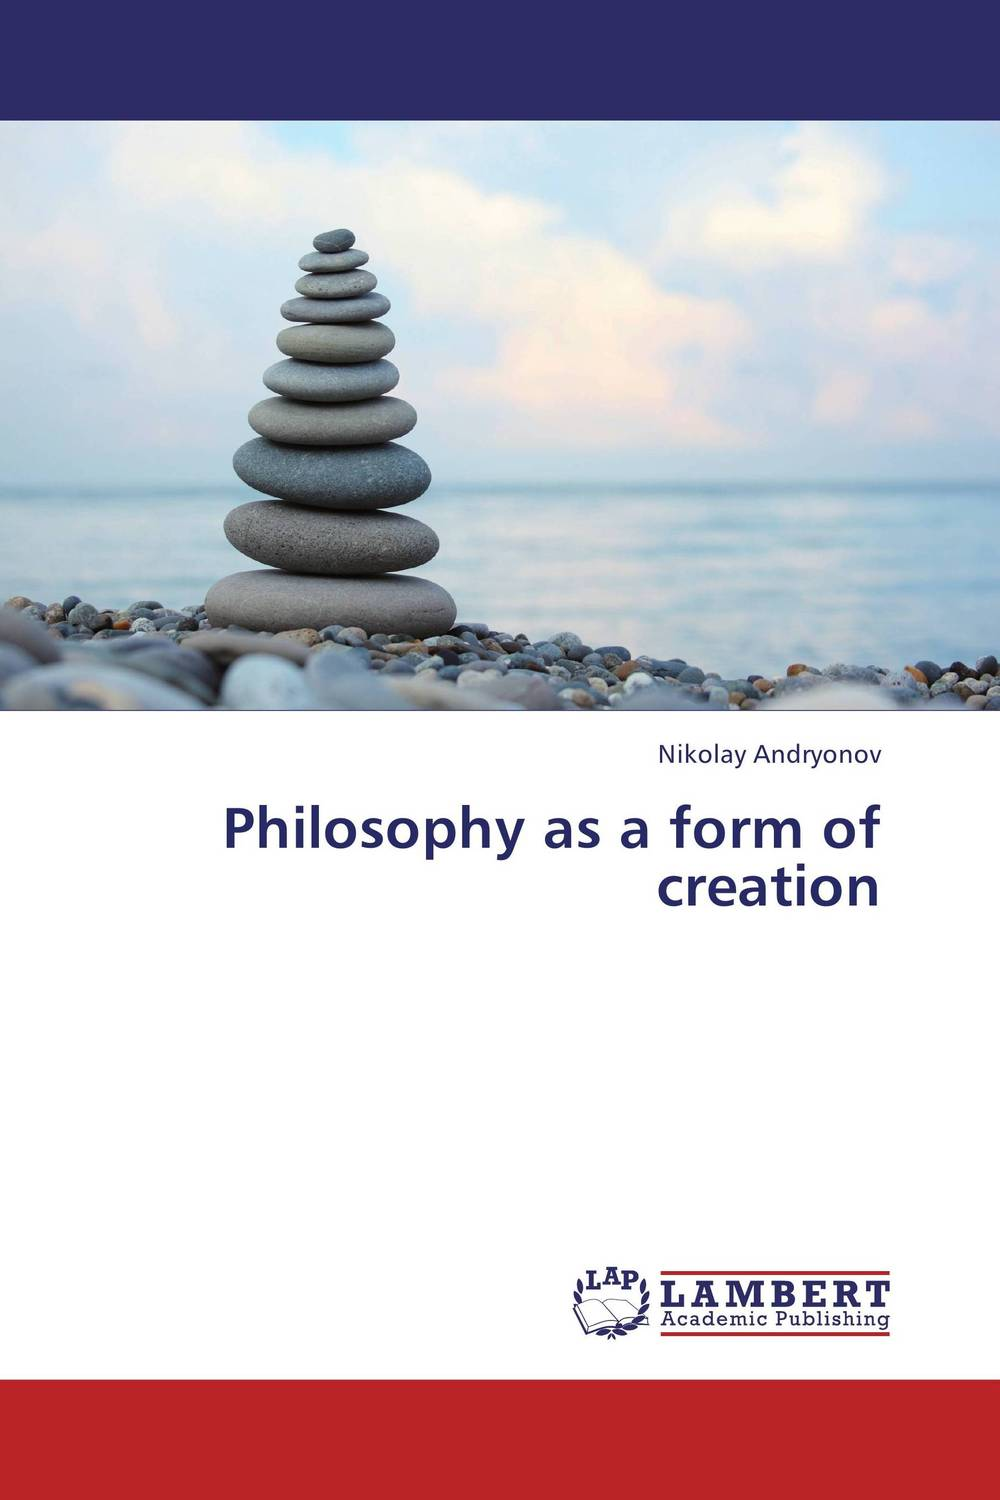 Philosophy as a form of creation